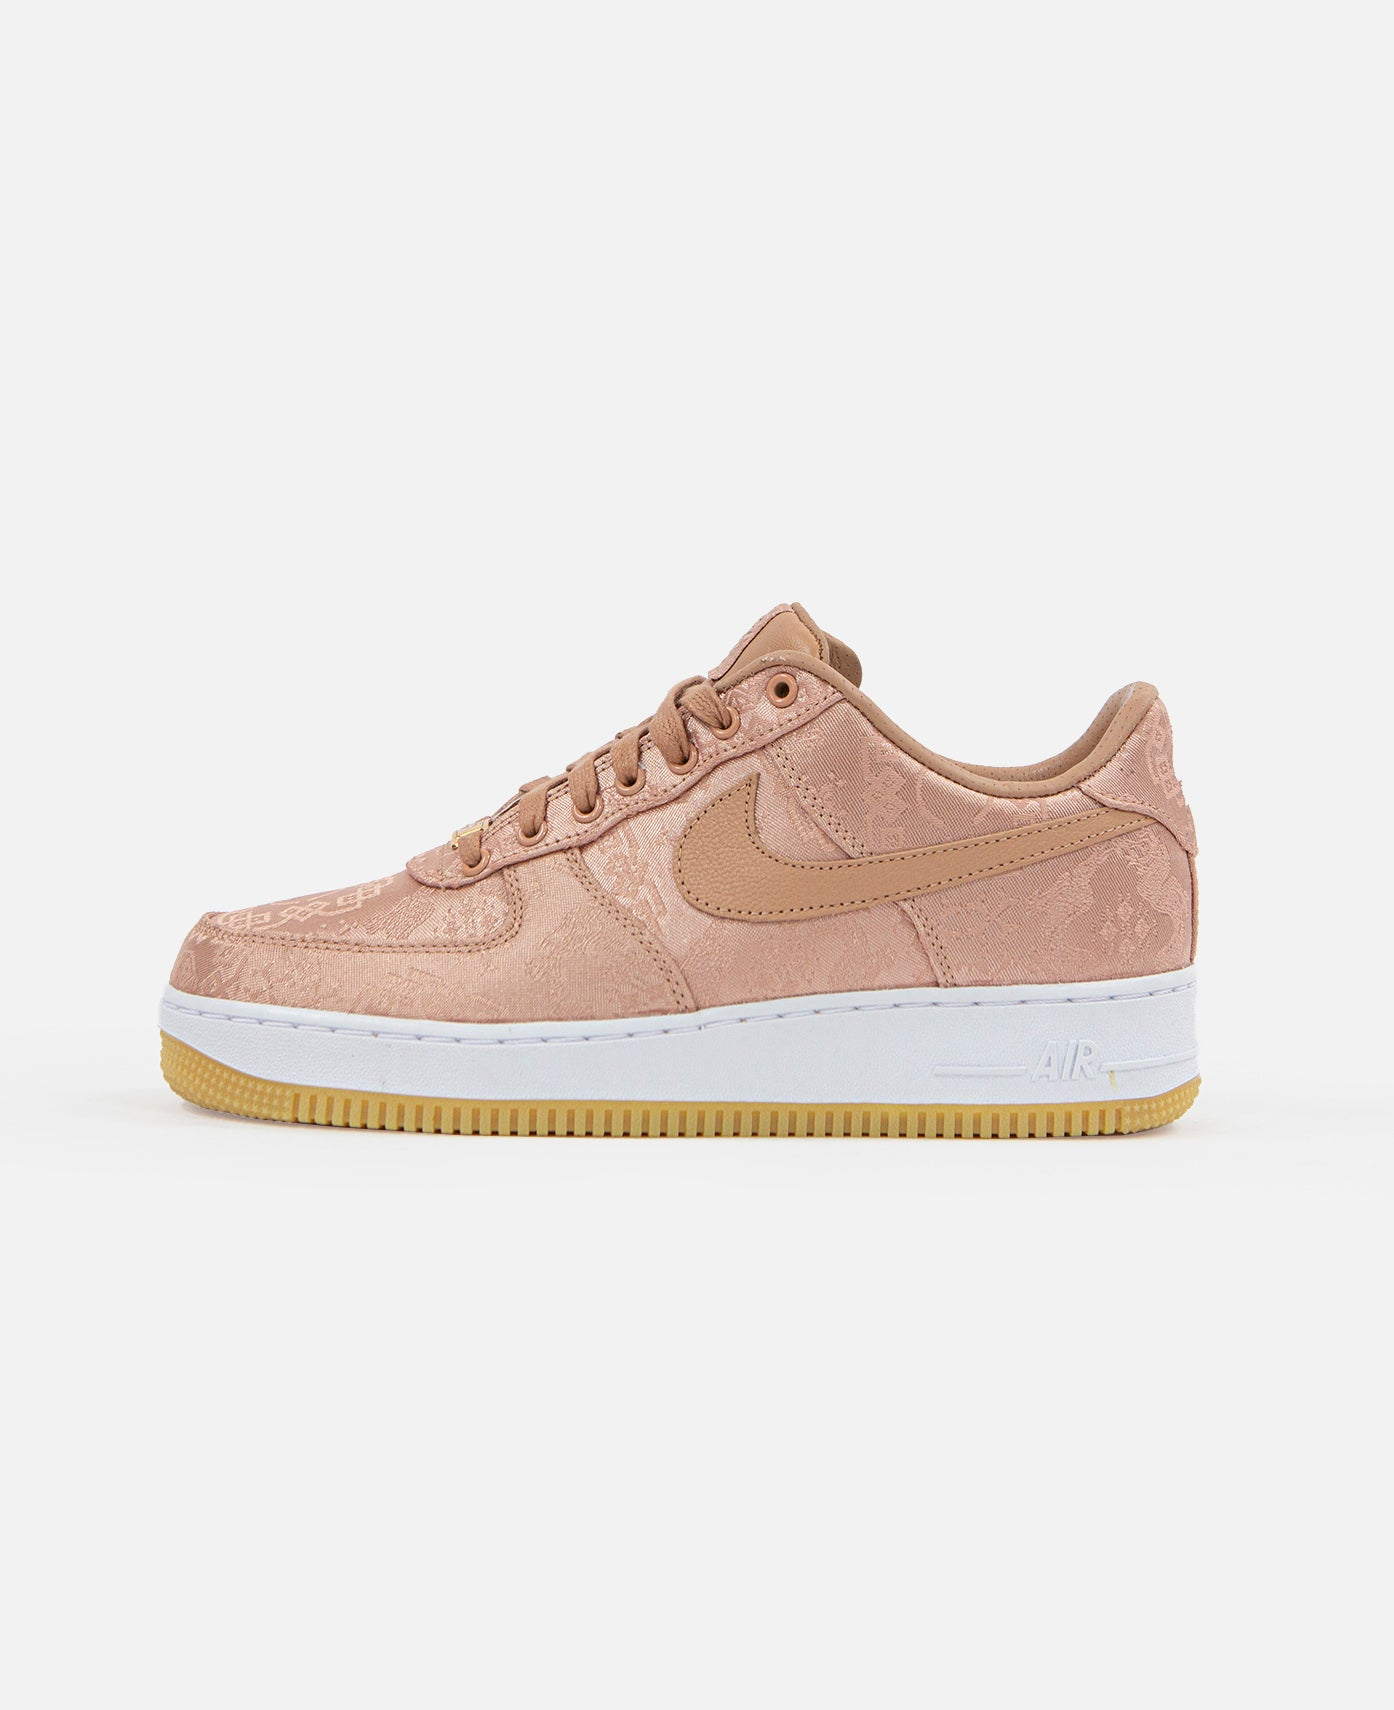 "componente Inconcebible Frugal  Donnie Yen Stars in CLOT x Nike's ""ROSE GOLD SILK"" Air Force 1 Campaig –  JUICESTORE"